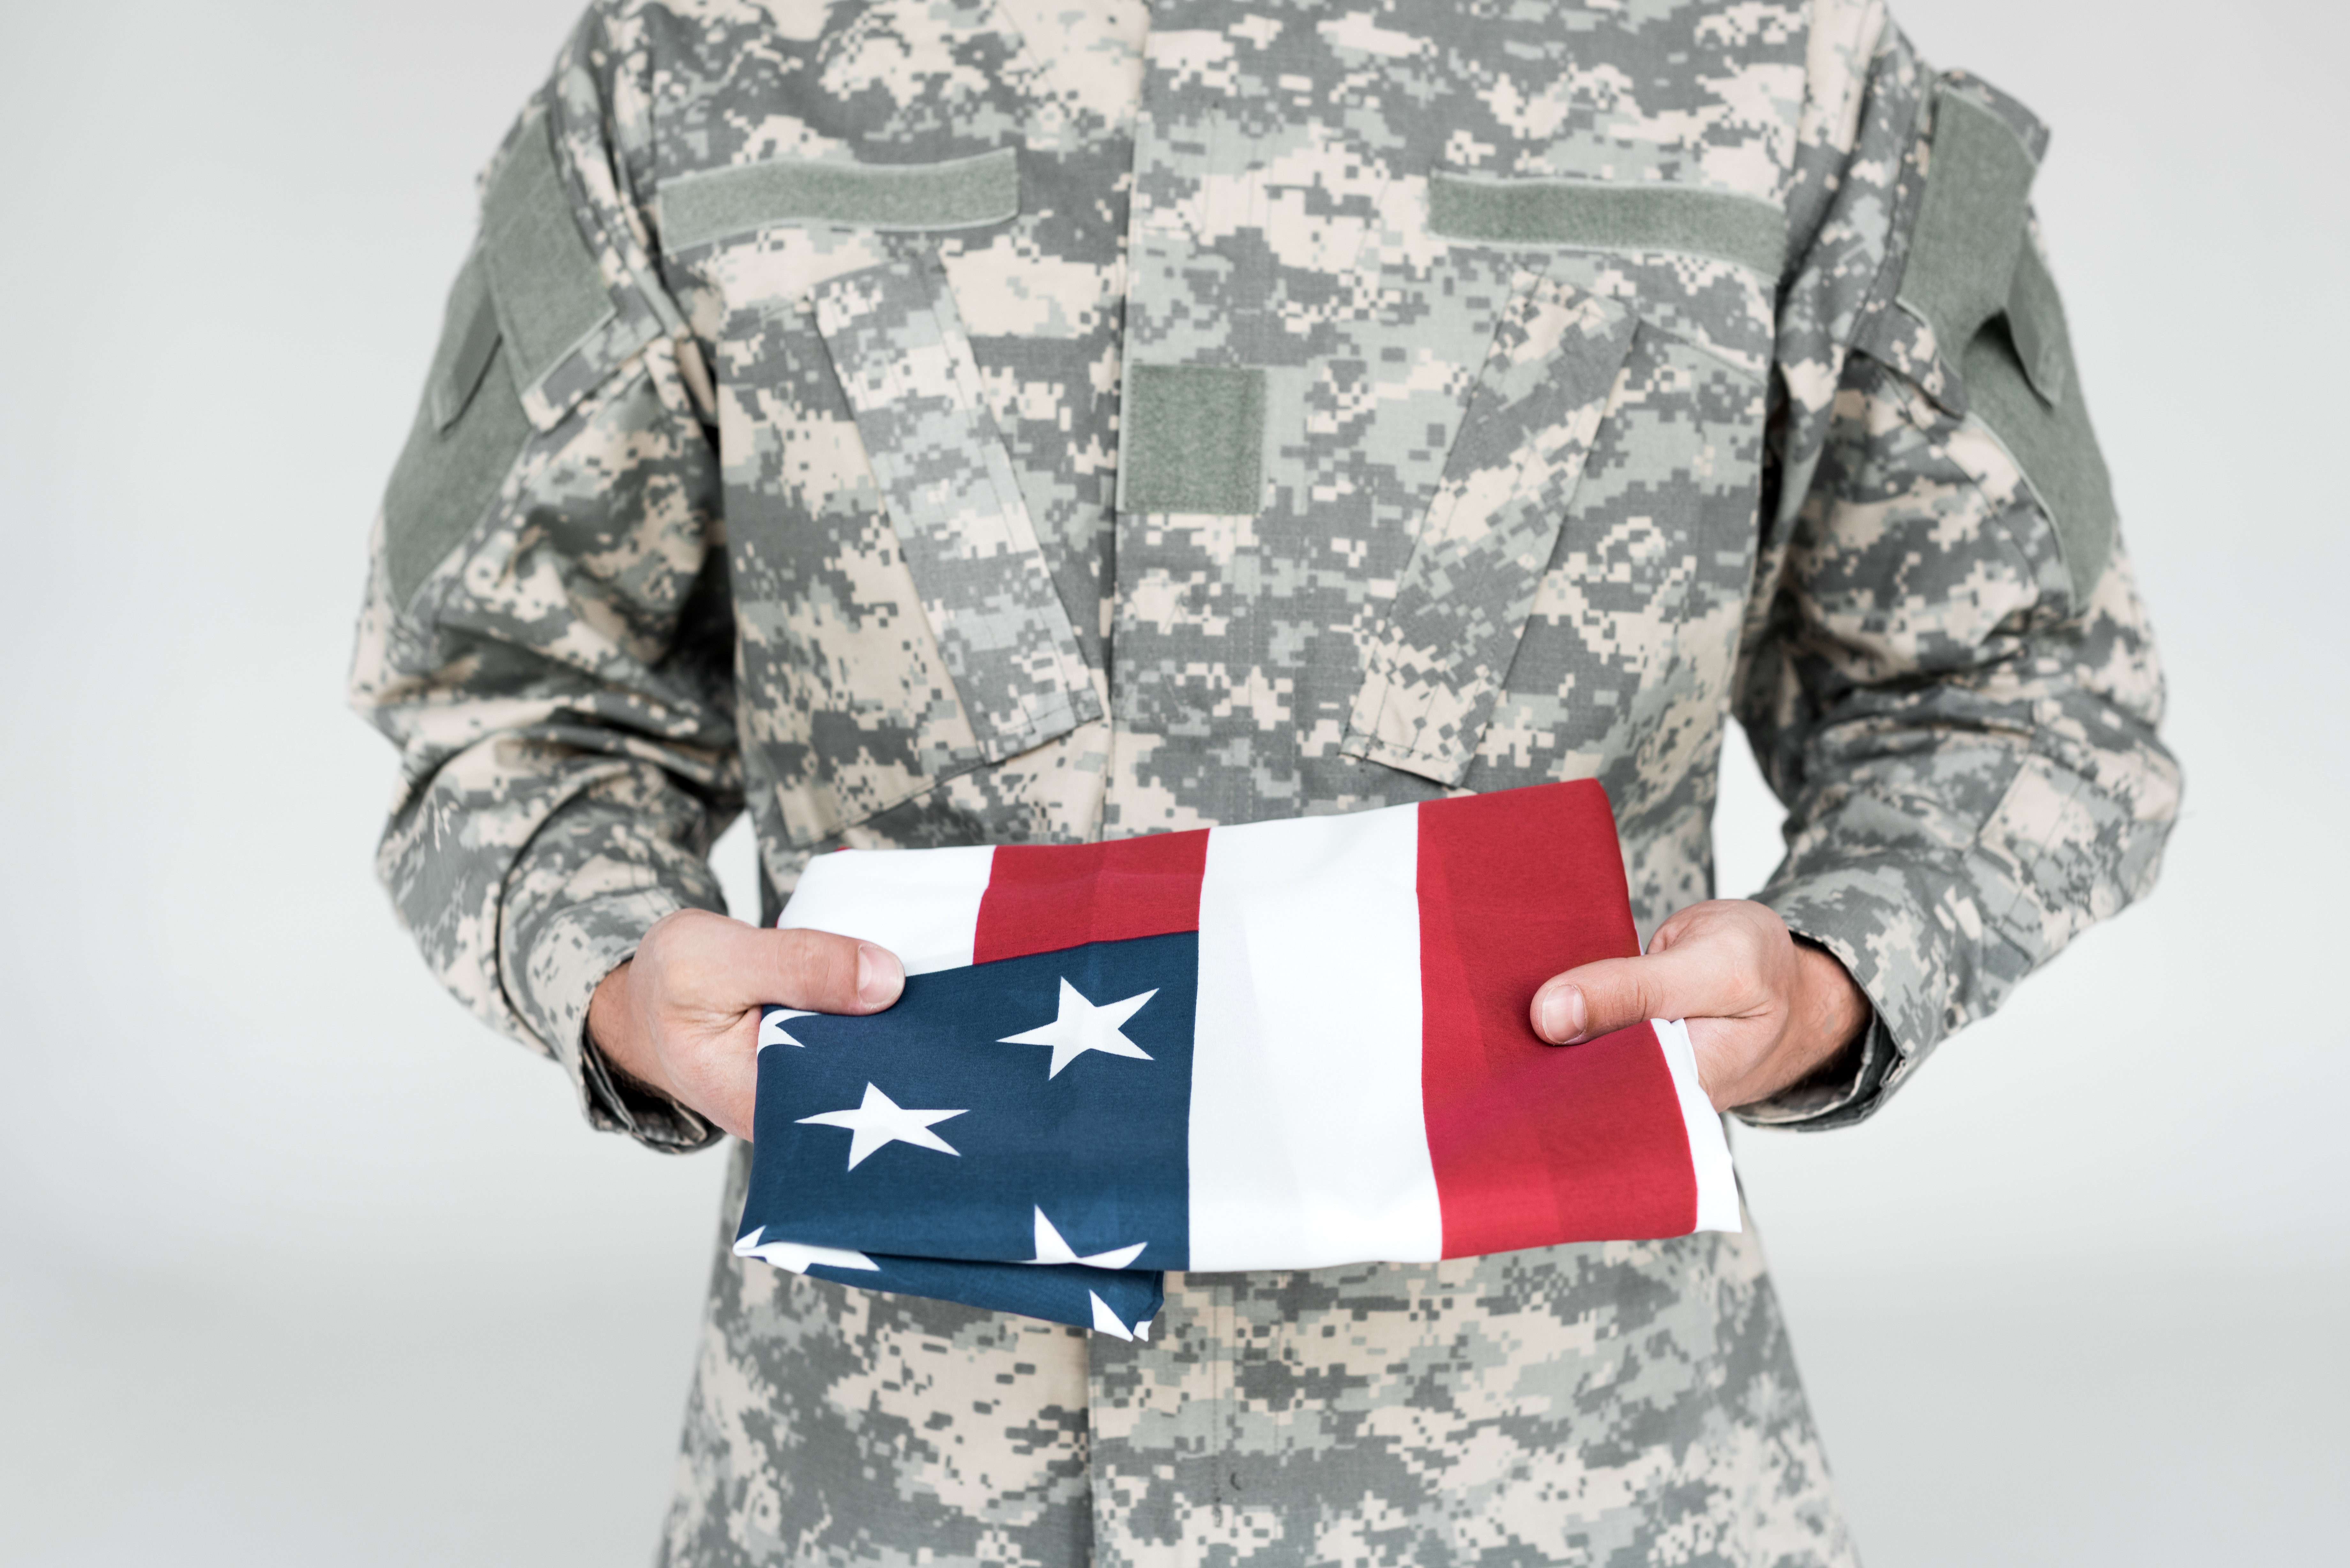 Usaa Vs Geico Auto Insurance Military Discount Who Has Better